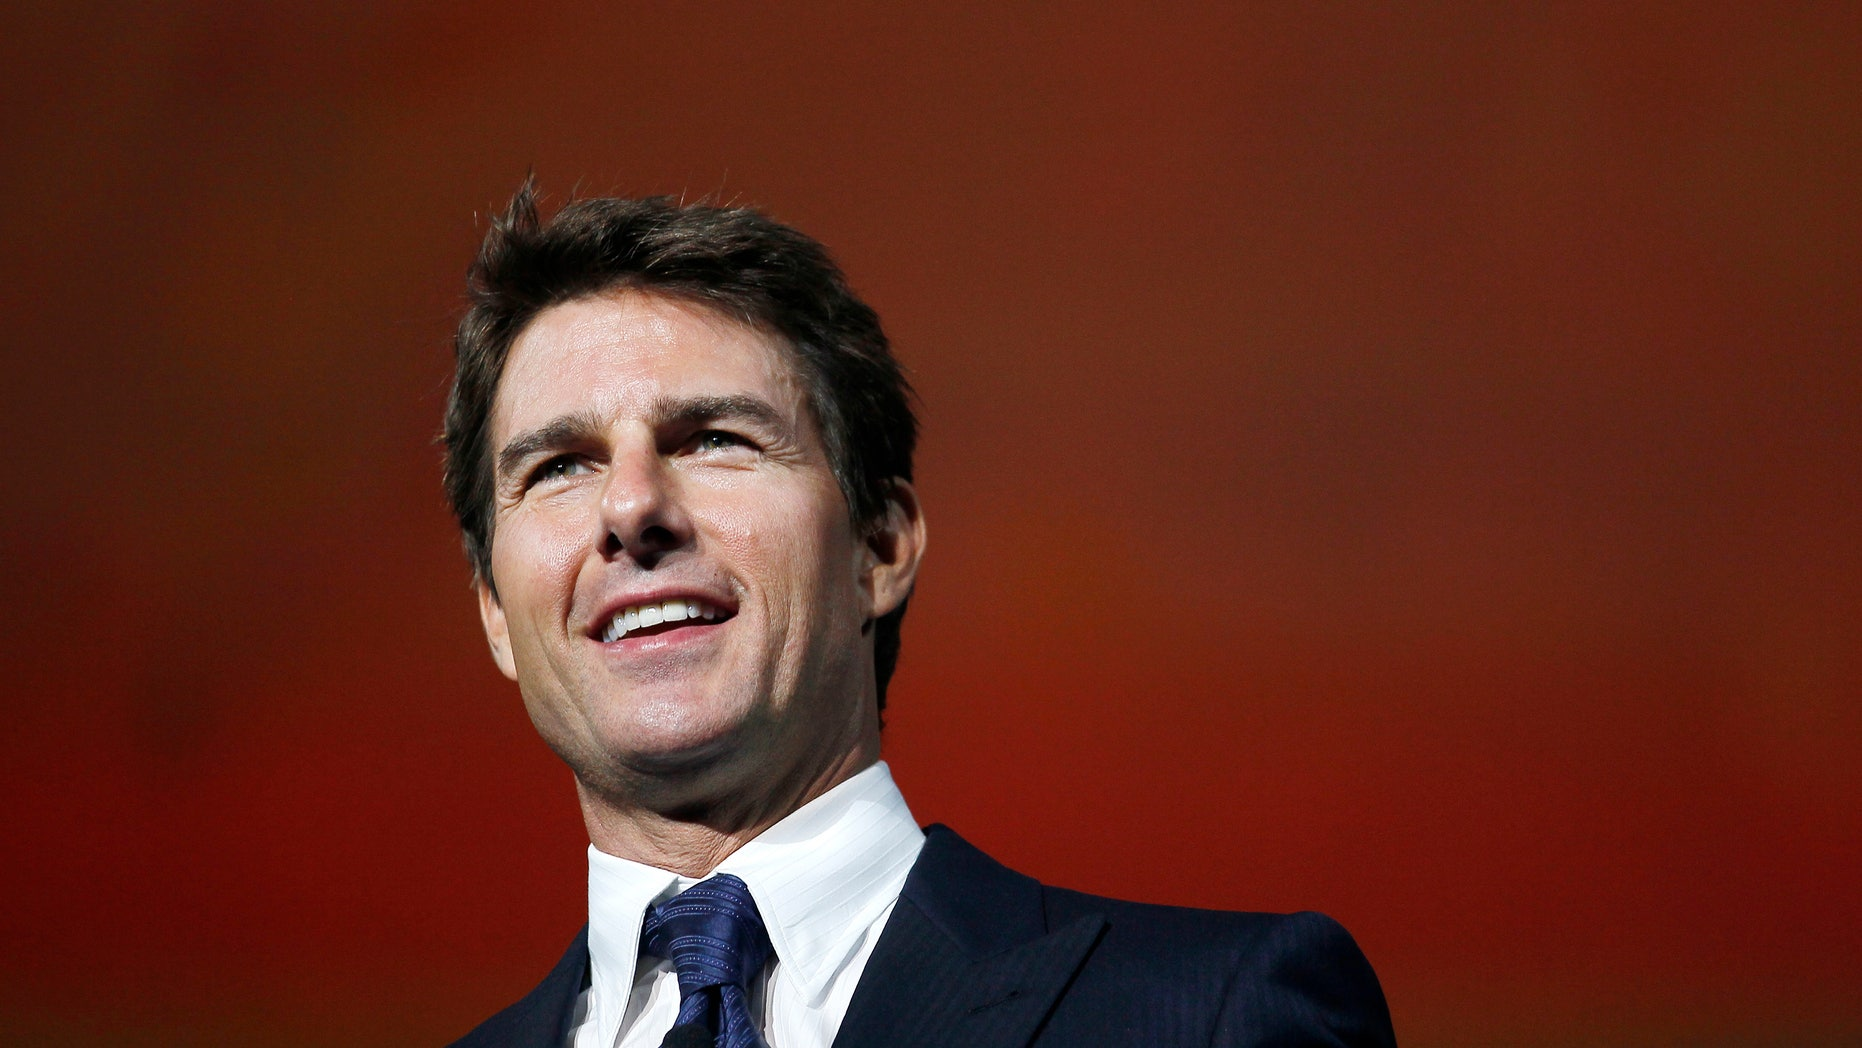 Actor Tom Cruise arrives on stage at the annual shareholders meeting for Walmart in Fayetteville, Arkansas June 7, 2013.